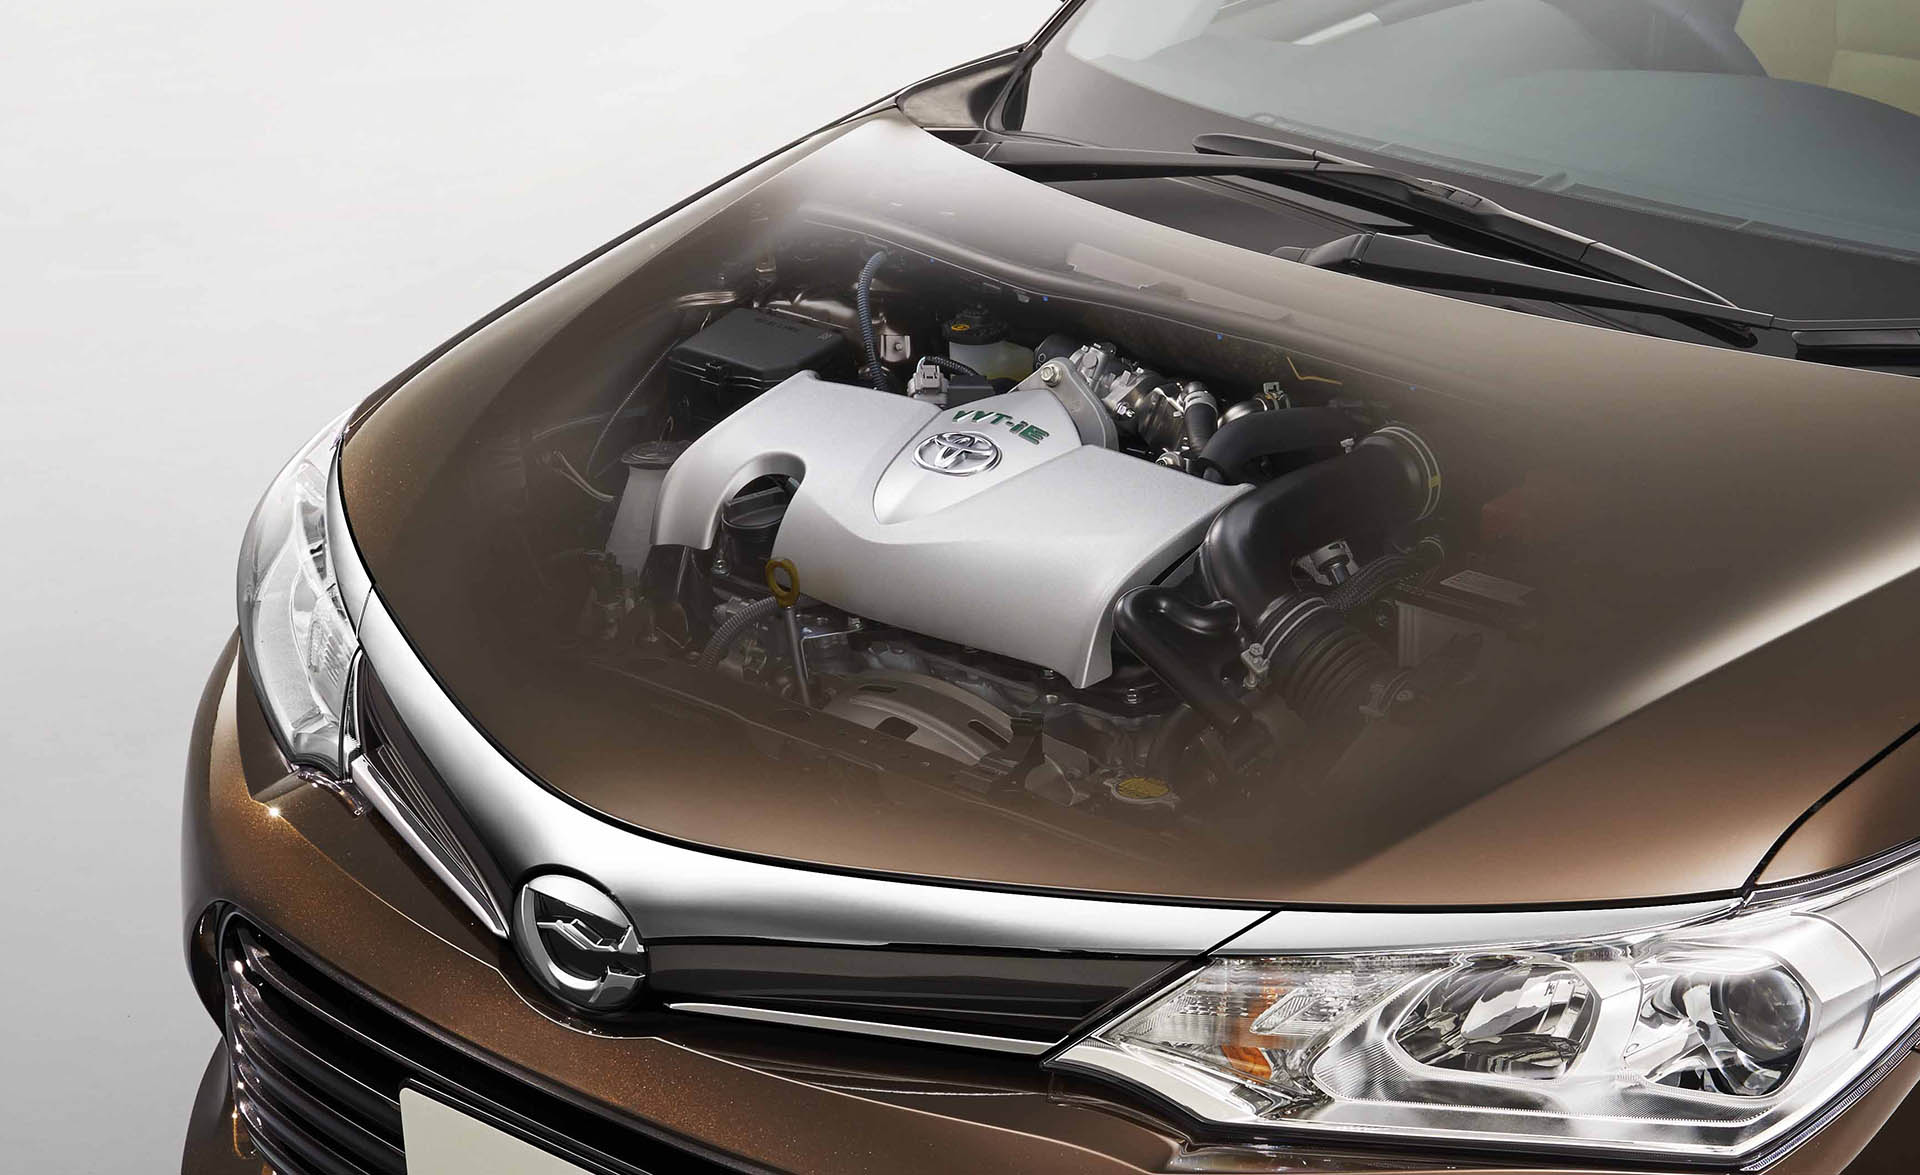 1.5-liter 2NR-FKE engine on board the Corolla Axio